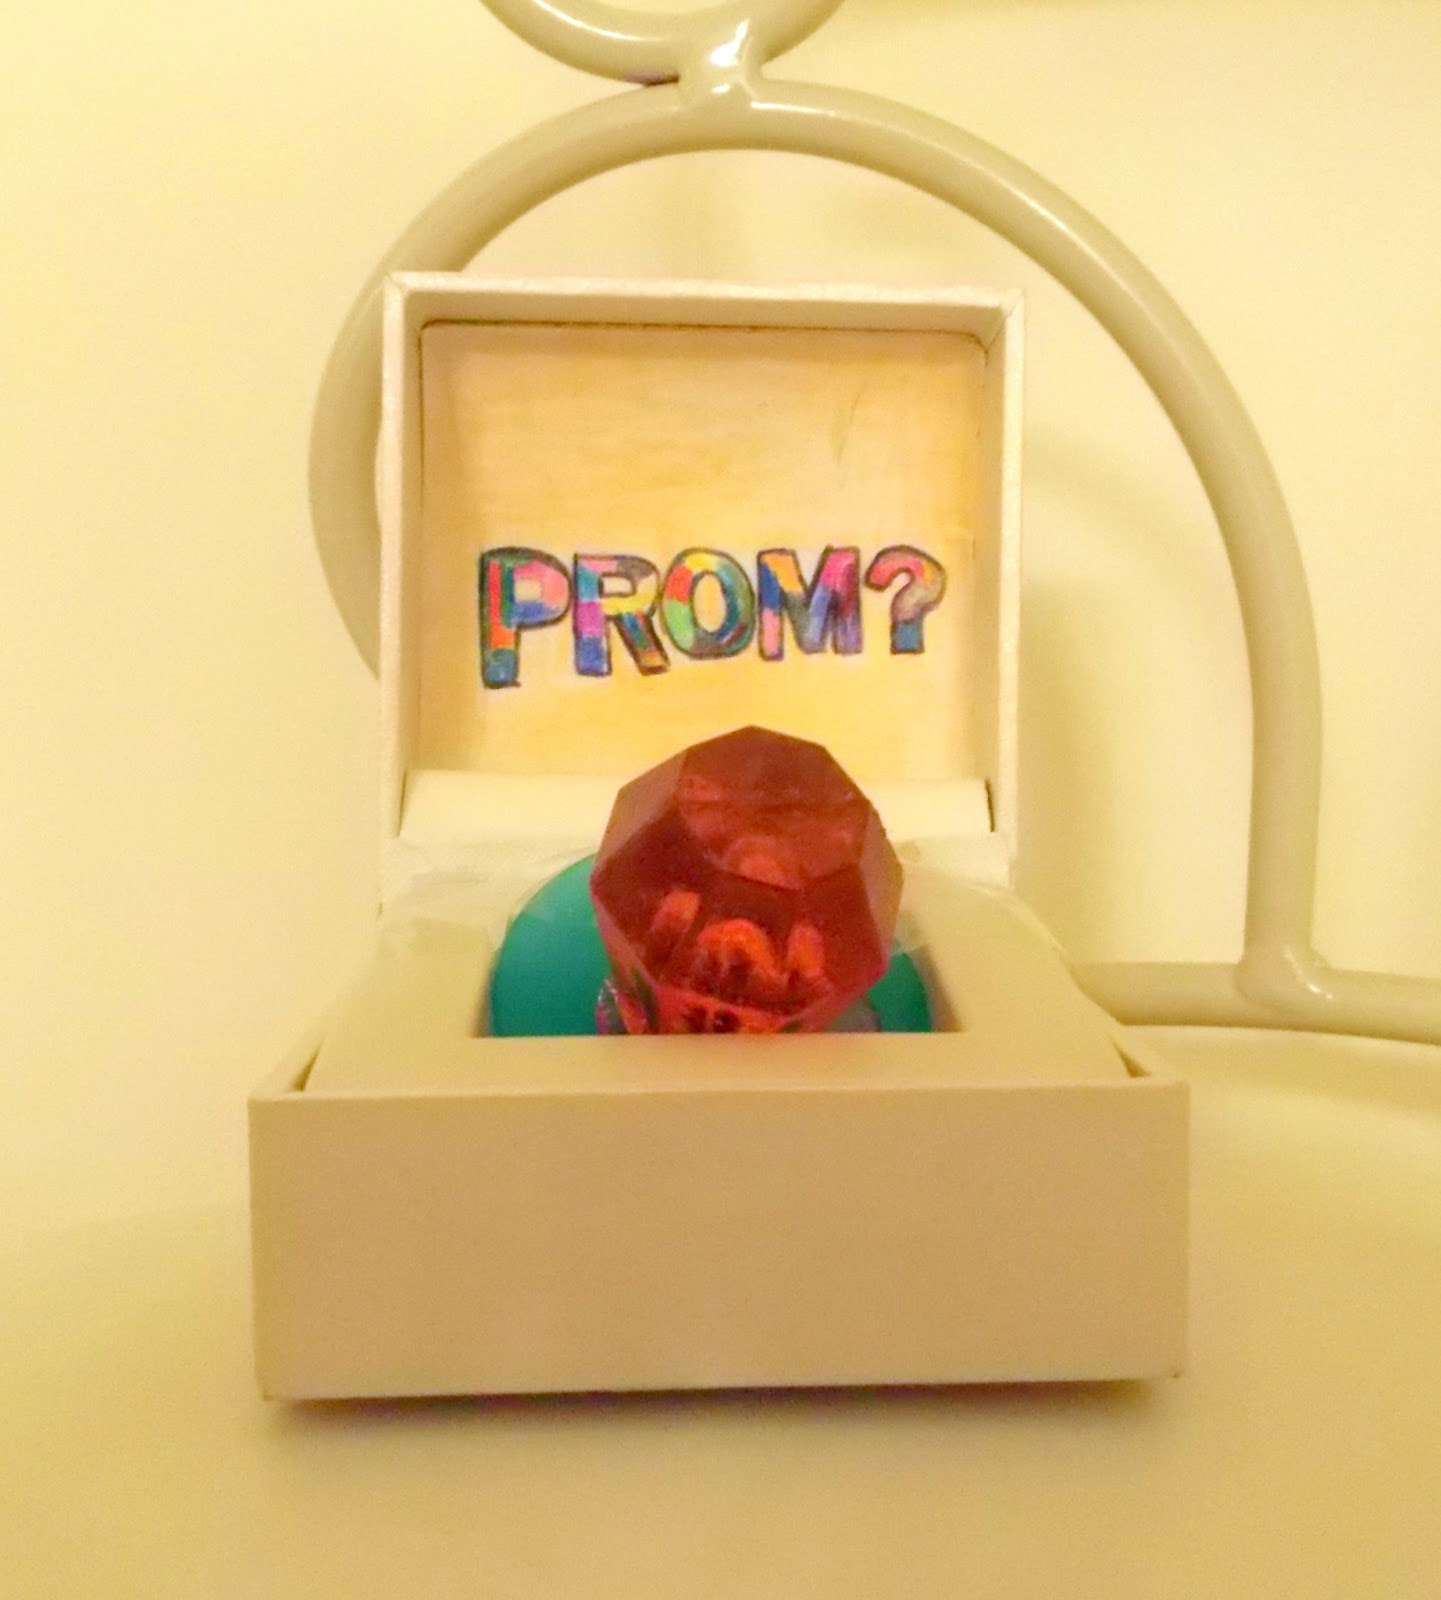 Asking To Prom Pinterest asking Her to be his prom